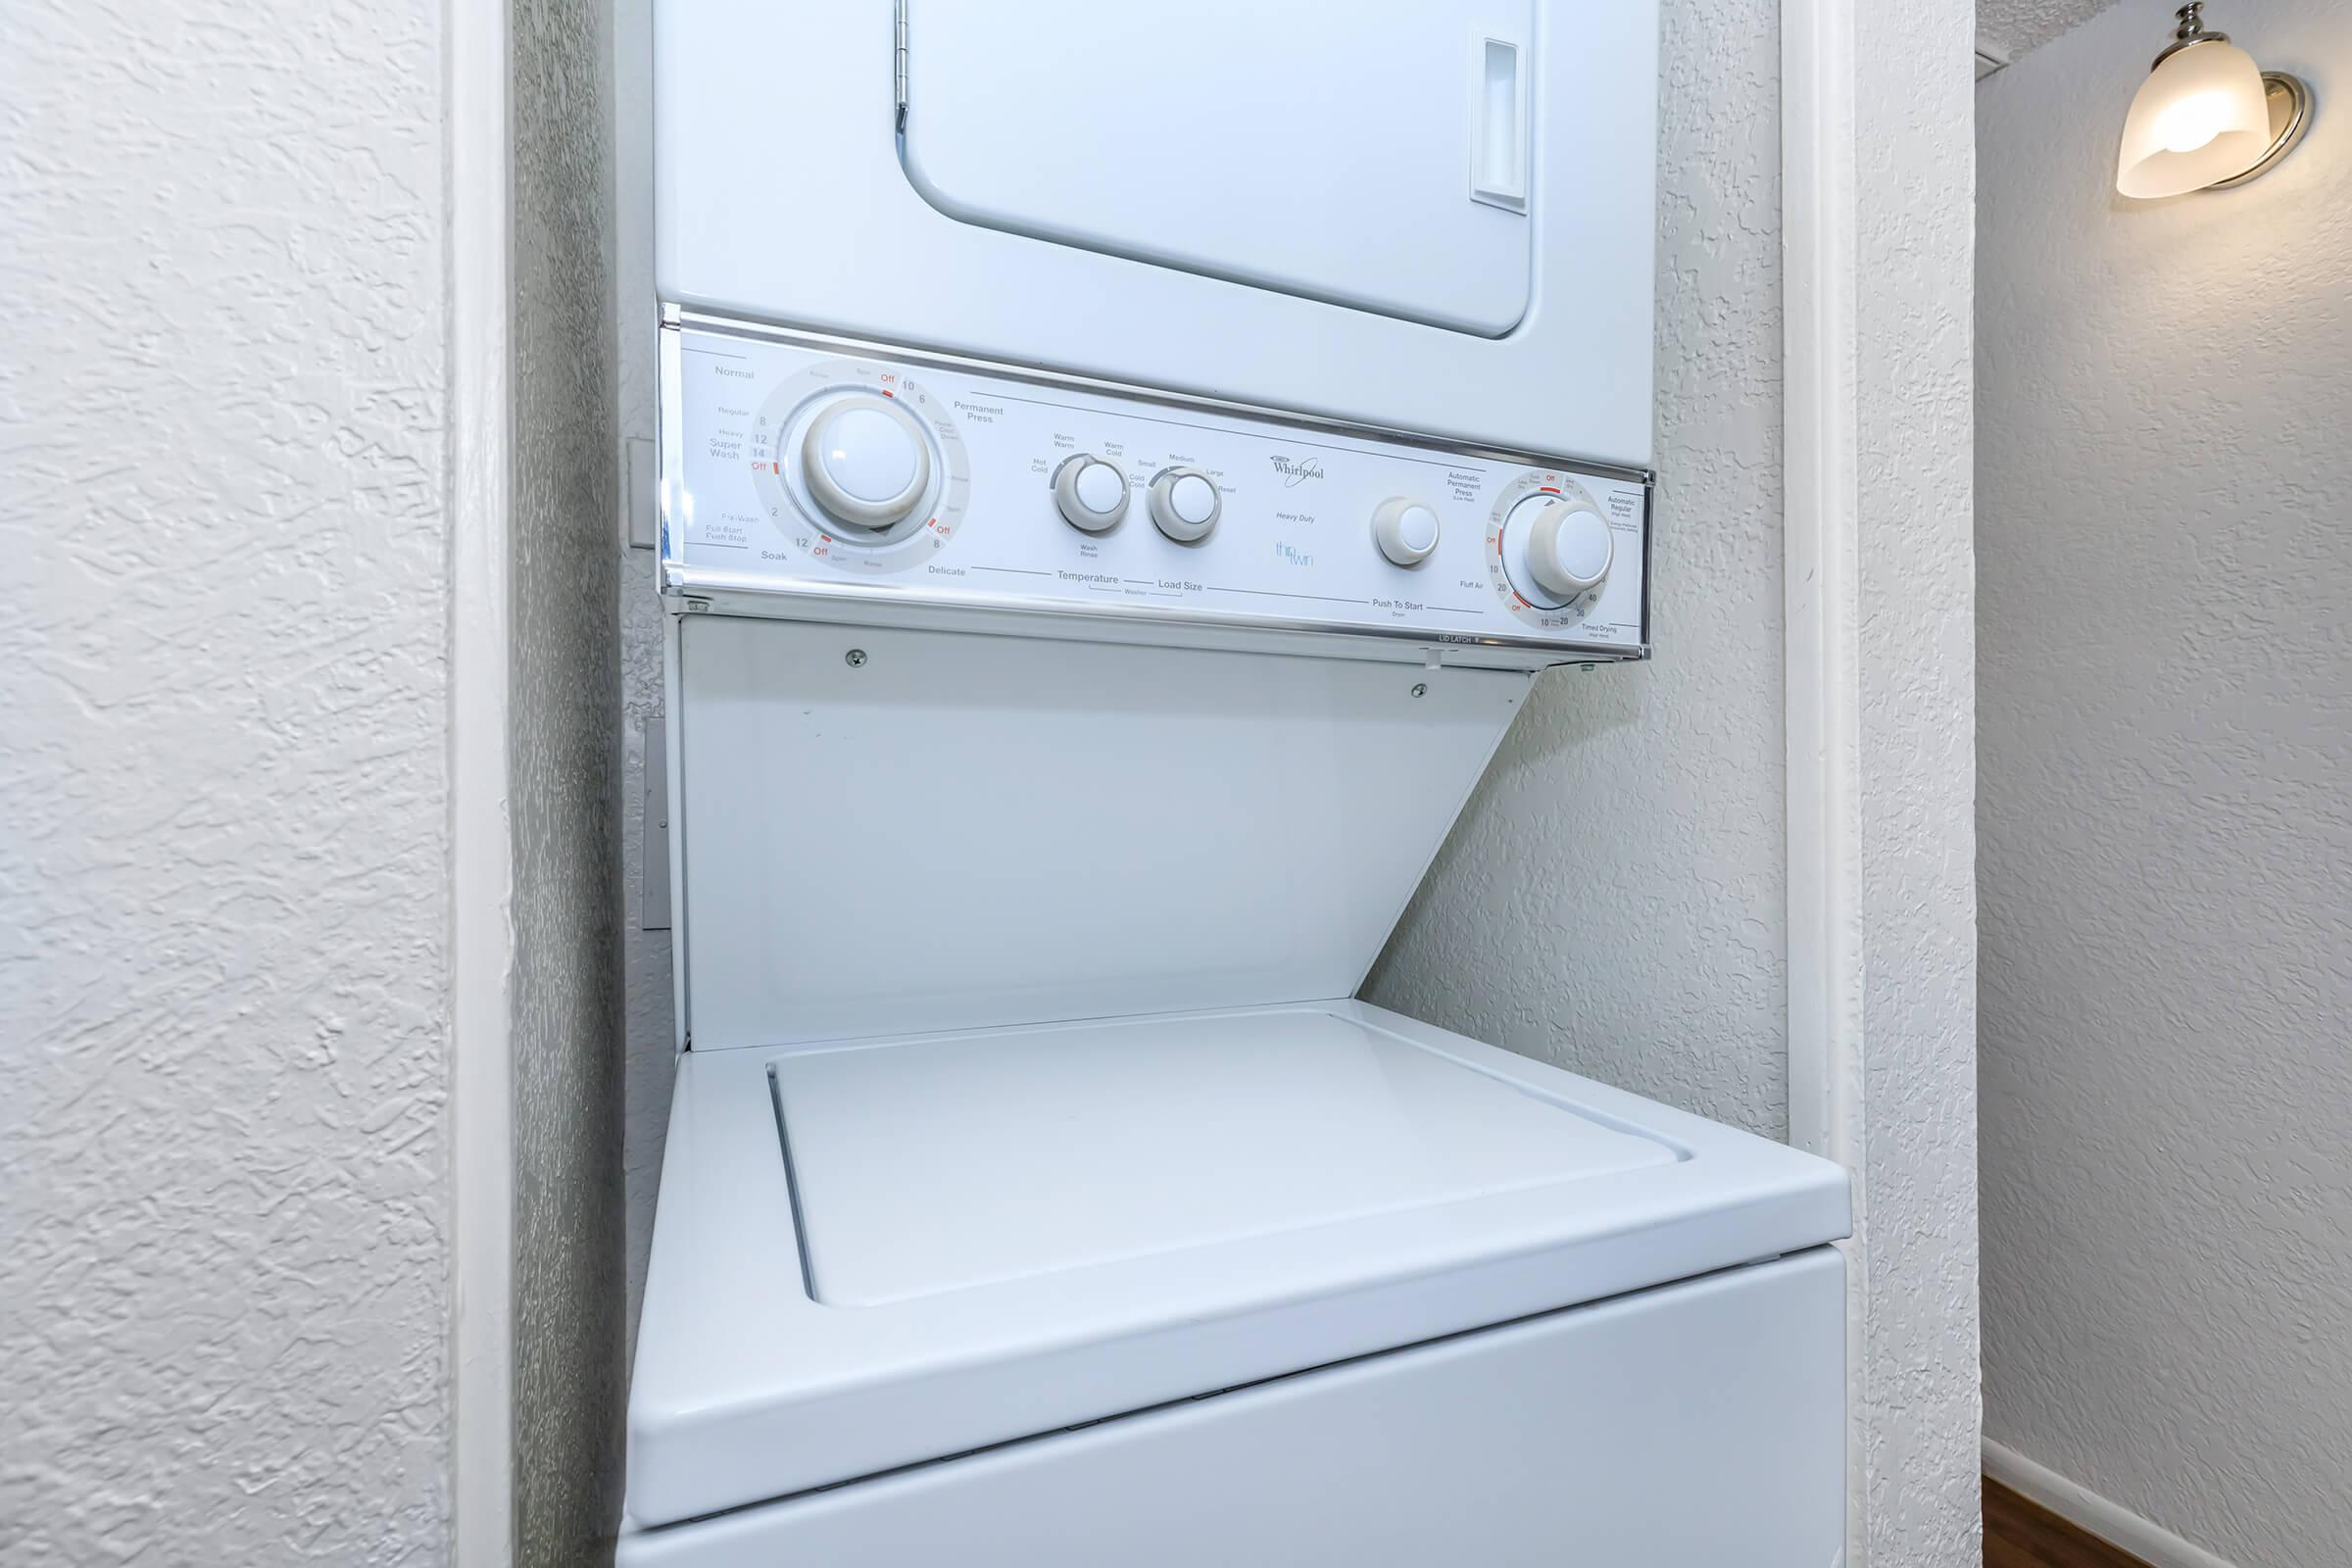 a stove top oven sitting next to a door